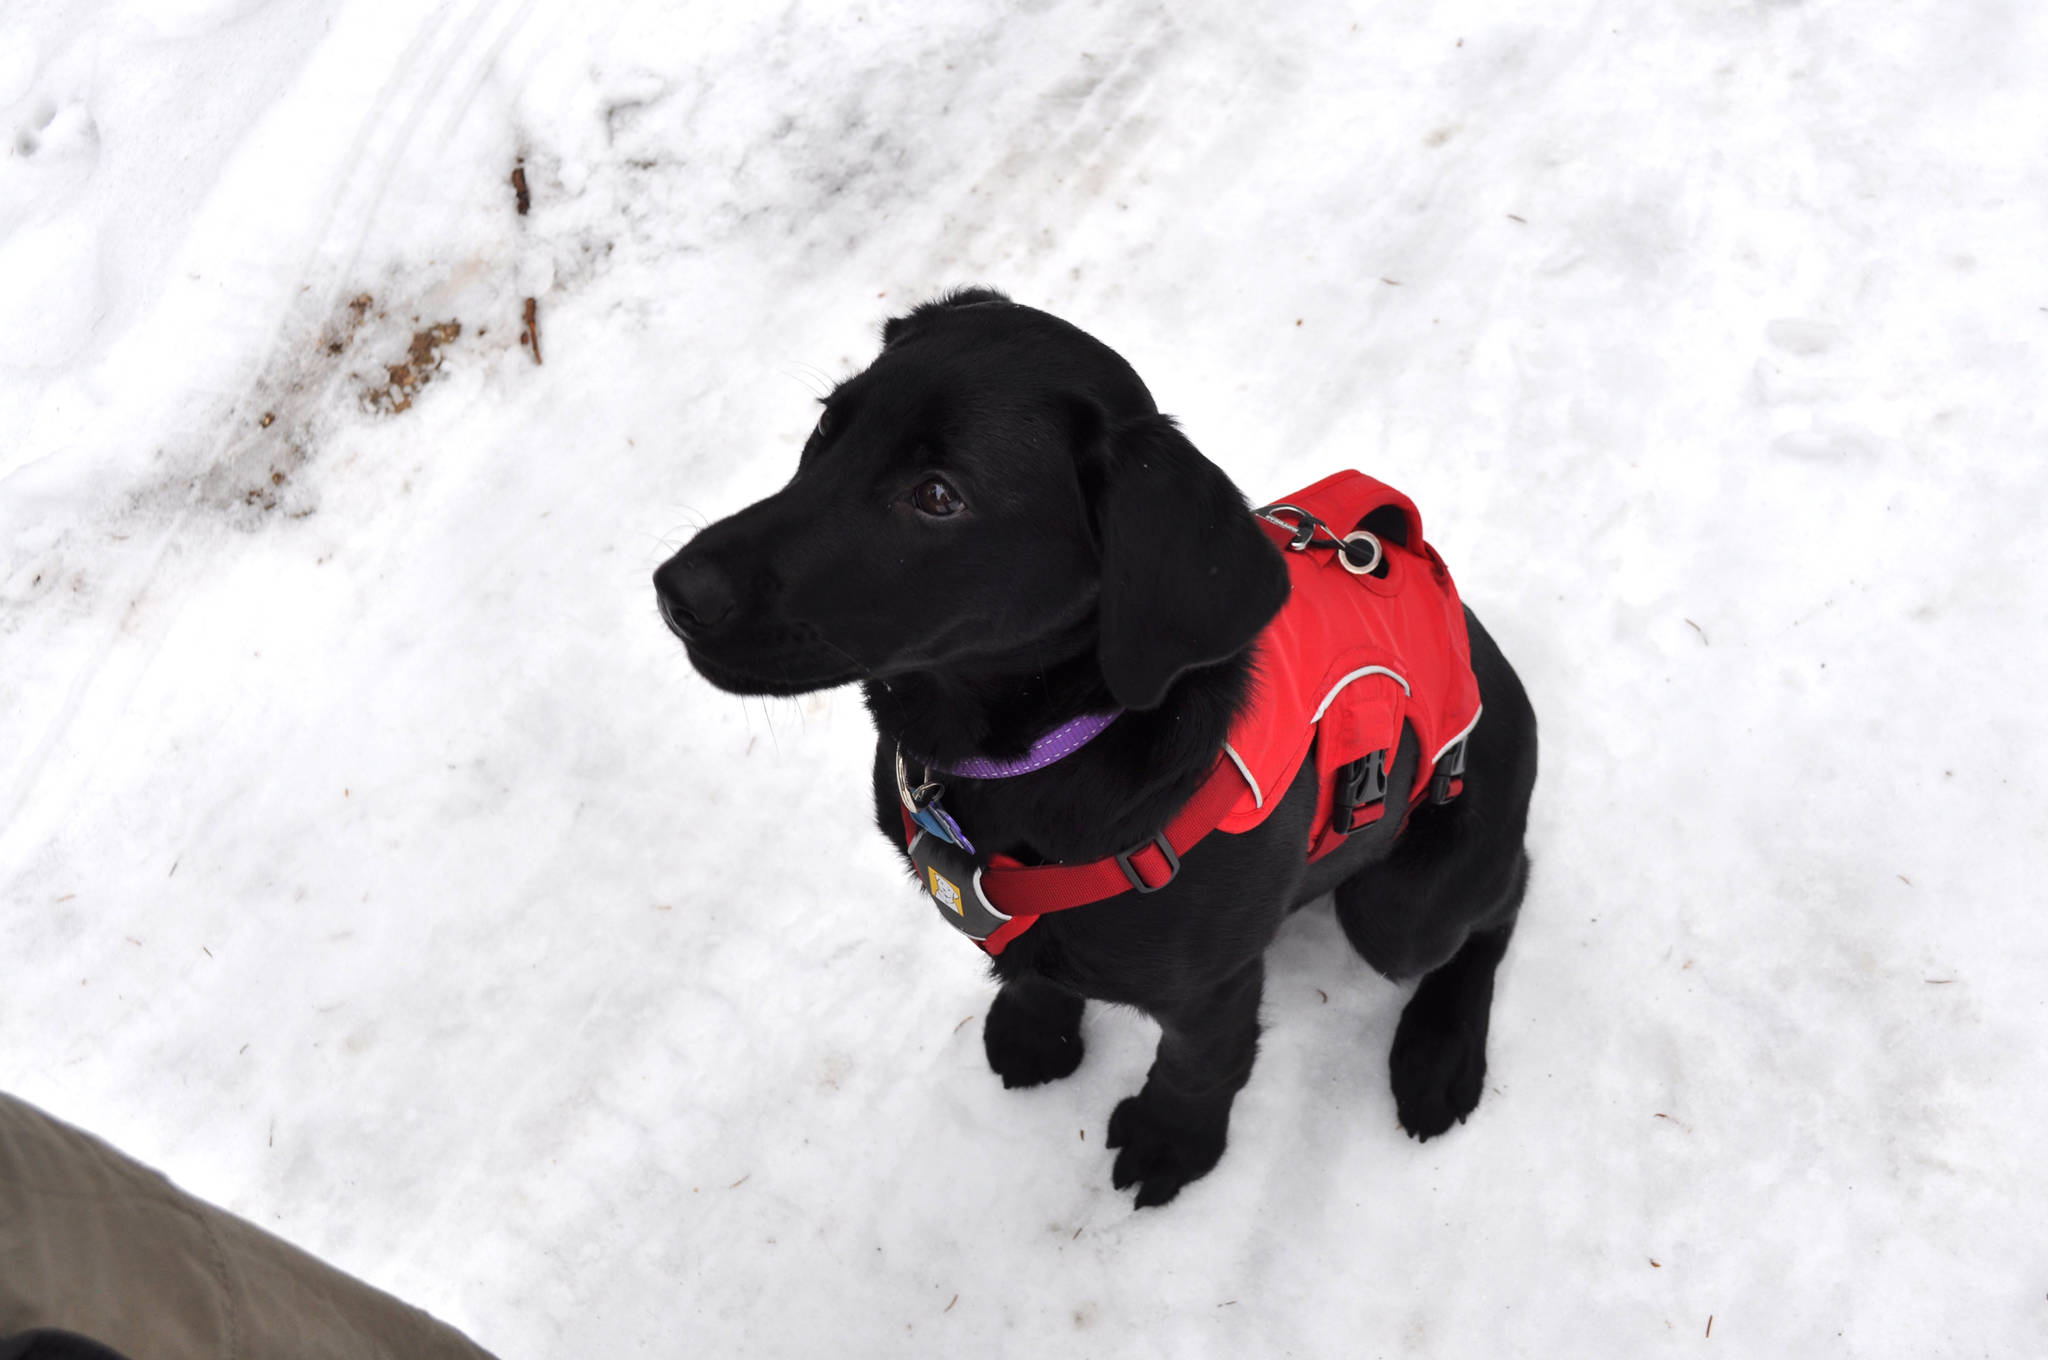 Chilko has aspirations of becoming an avalanche rescue dog. Keri Sculland/Star Photo